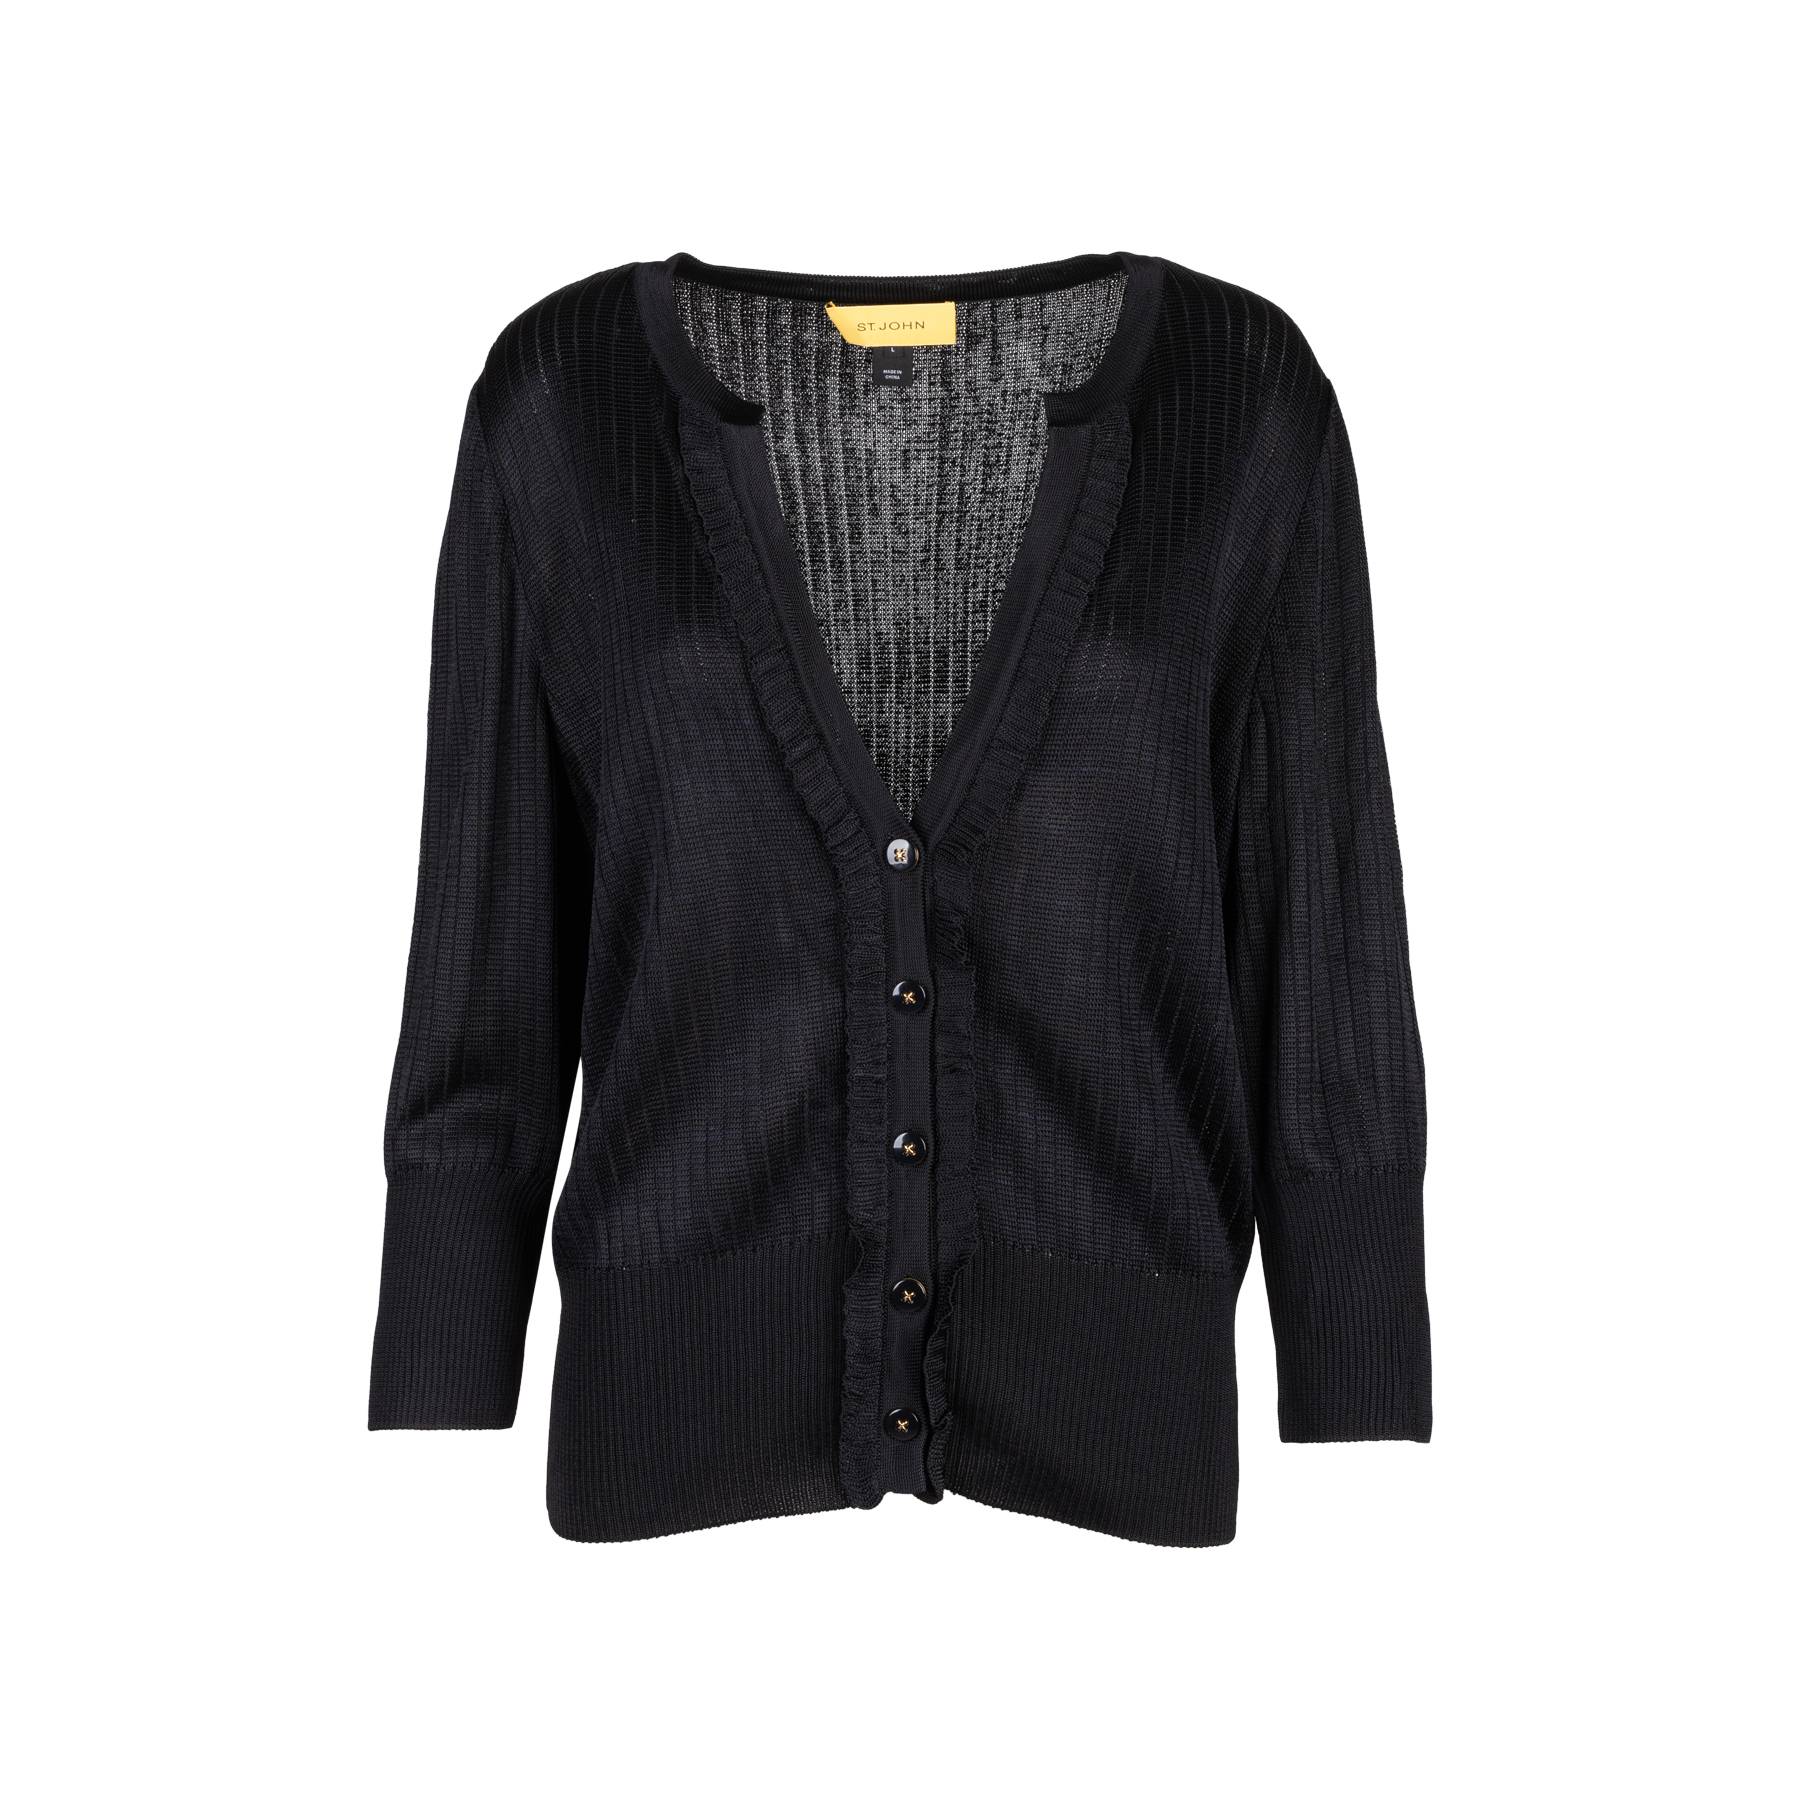 cc94e7df839 Authentic Second Hand St. John Knit Cardigan (PSS-111-00008) - THE FIFTH  COLLECTION